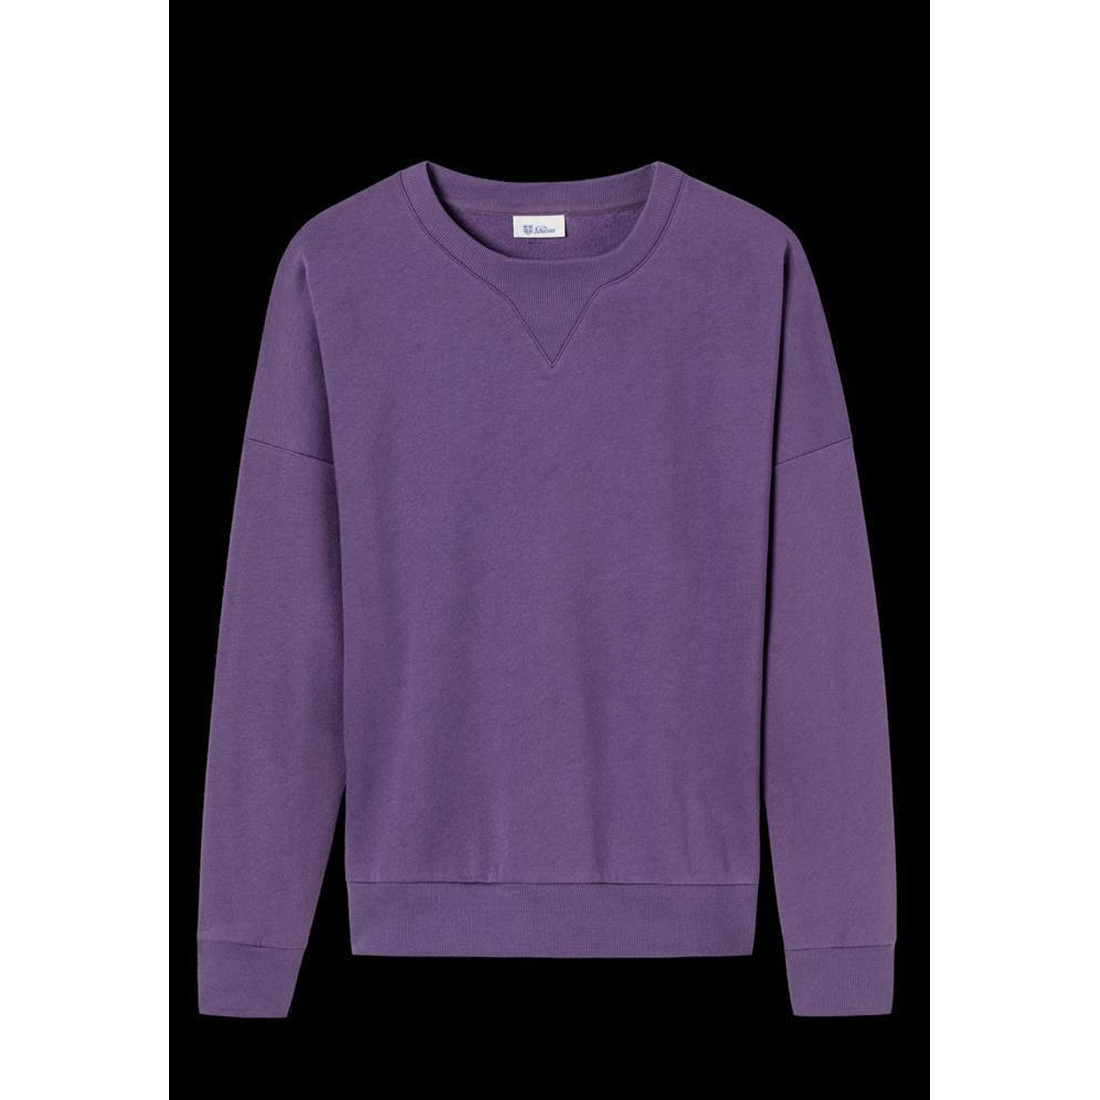 Sweater - Annegret - lila by Schiesser Revival